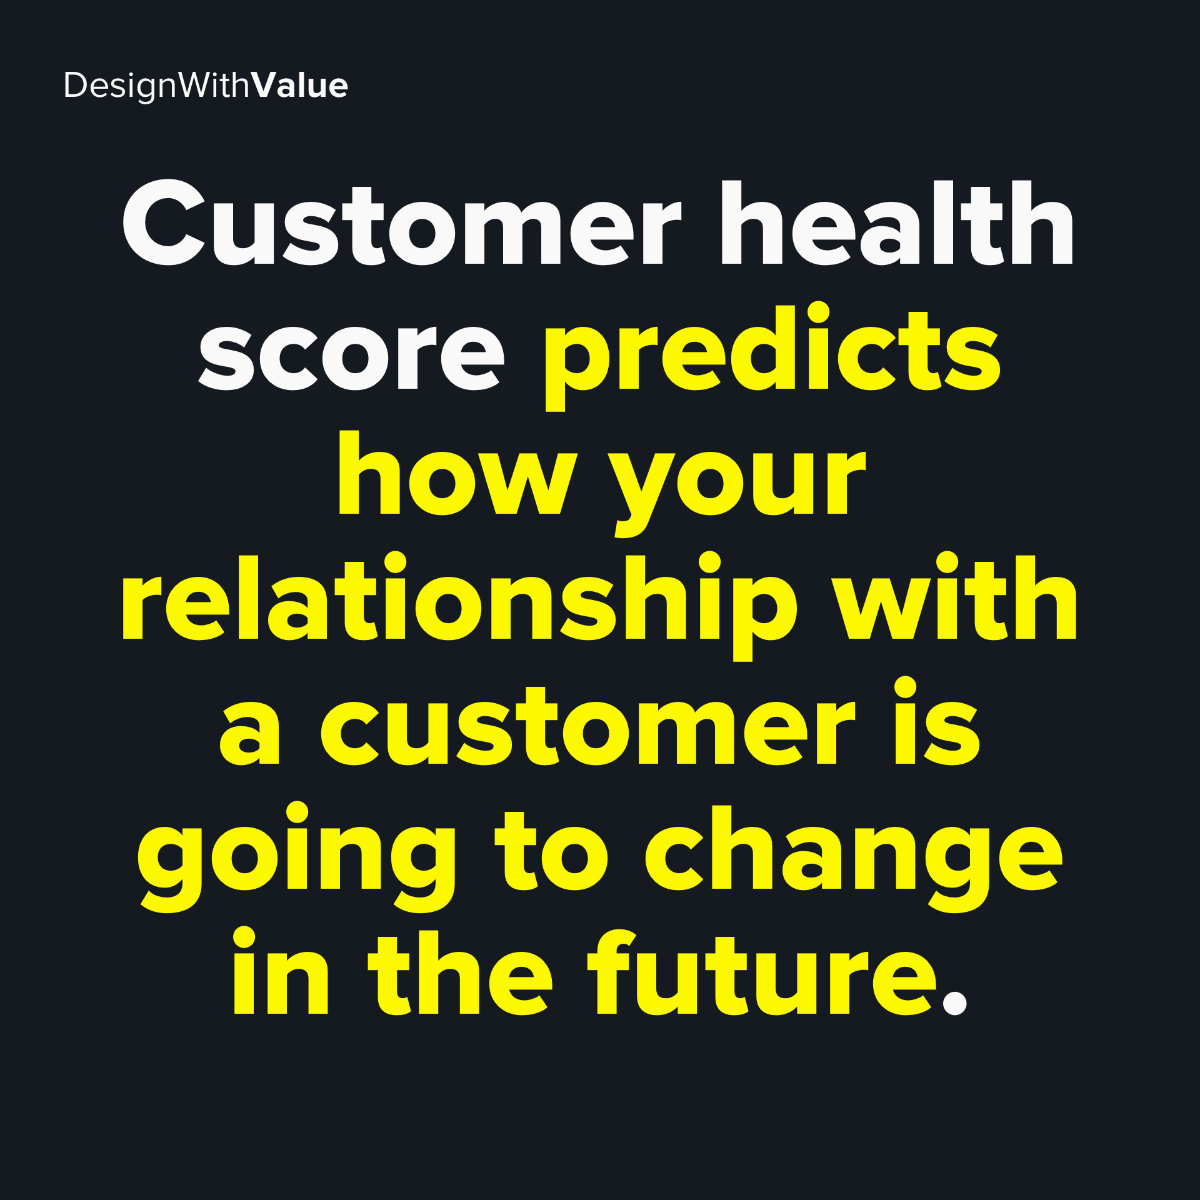 Customer health score predicts how your relationship with a customer is going to change in the future